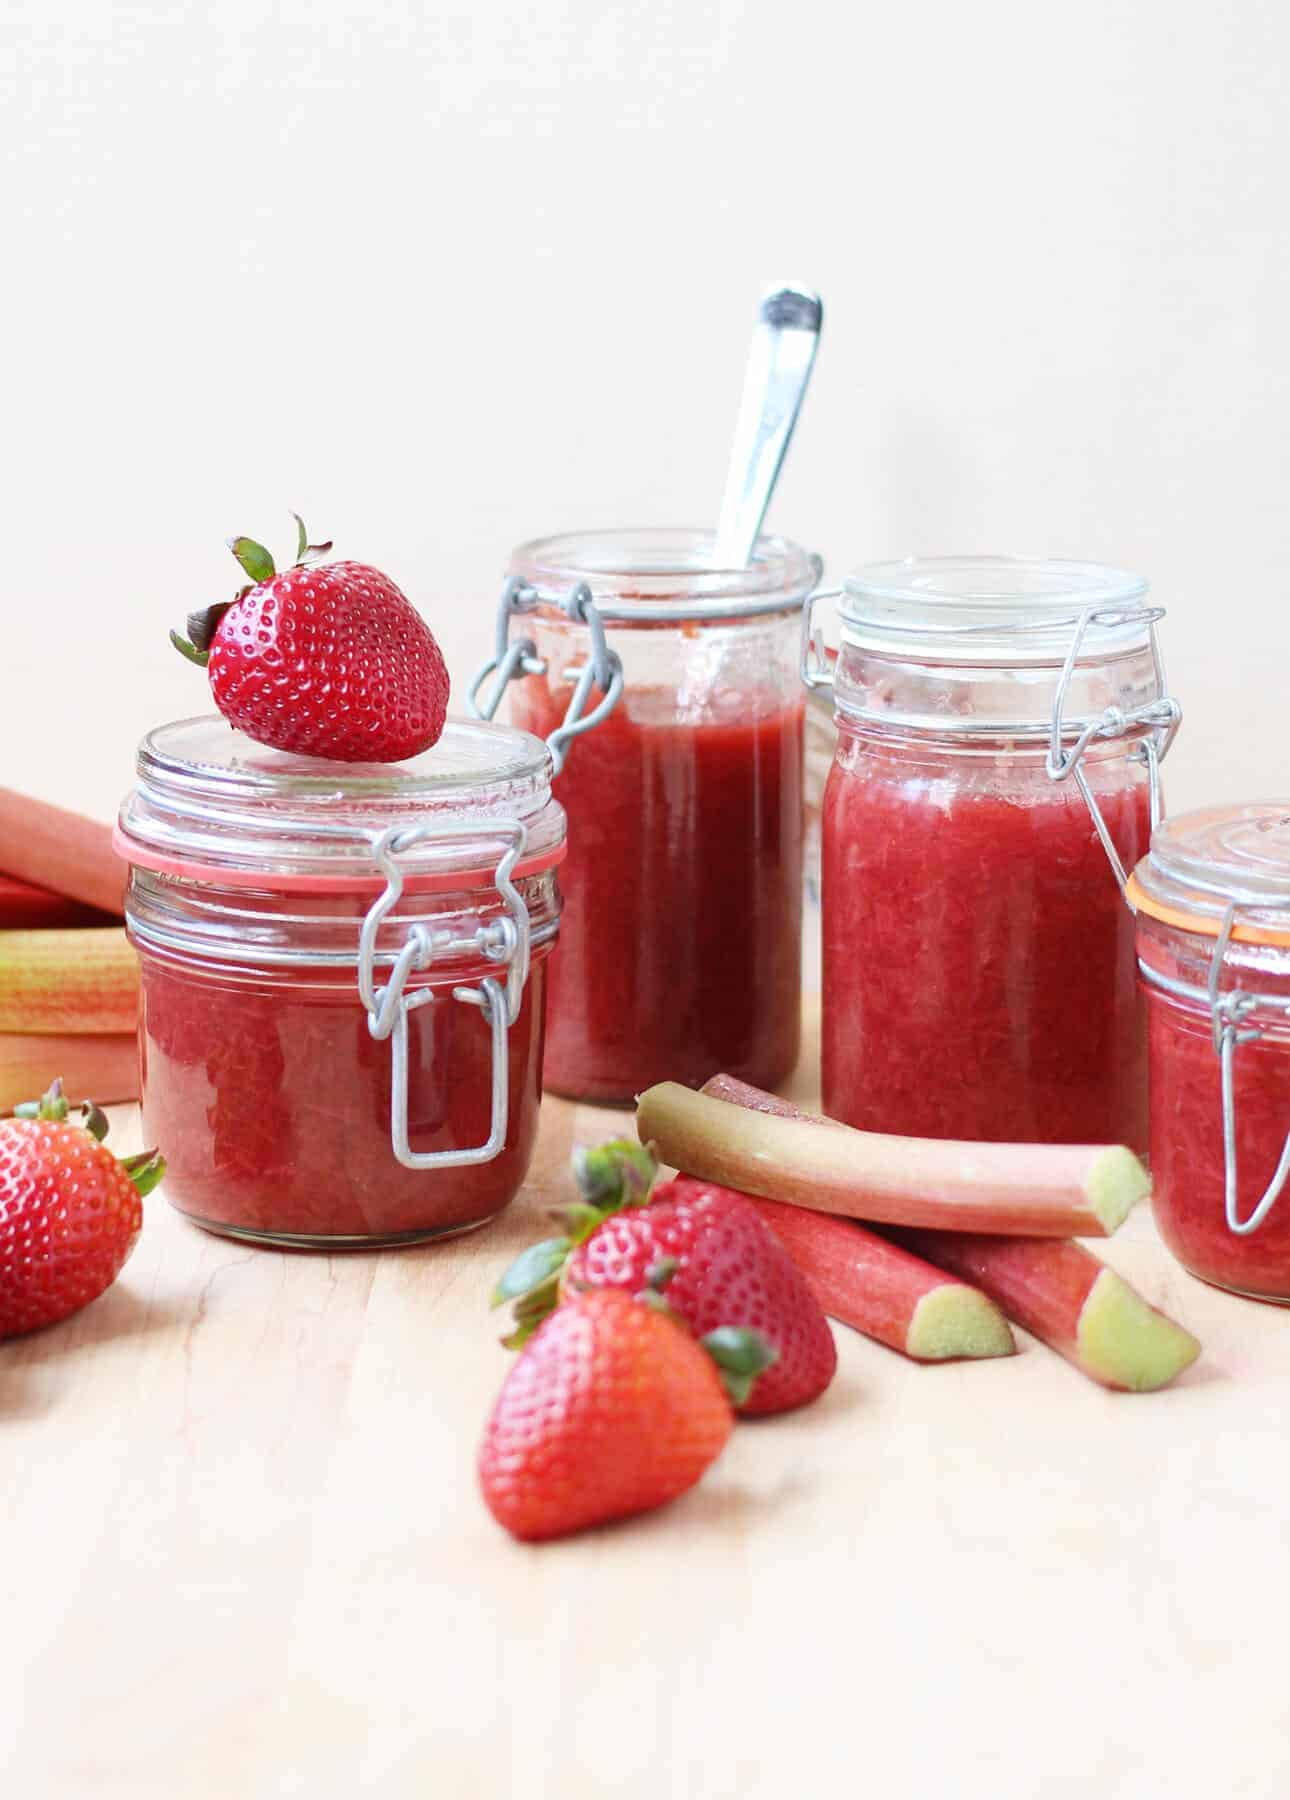 Rosé, Strawberry, and Rhubarb Compote